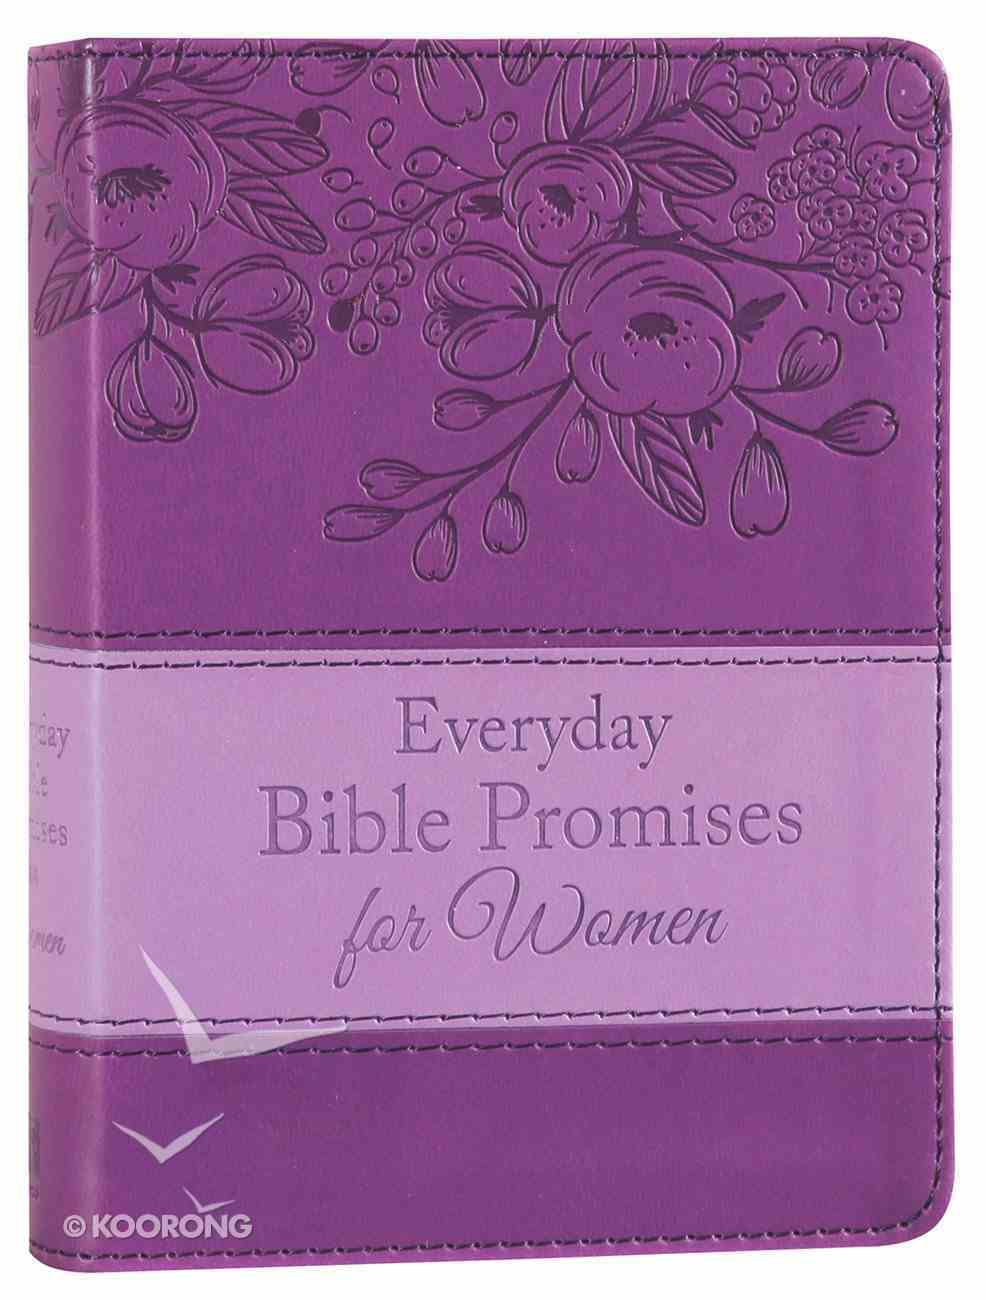 Everyday Bible Promises For Women (Purple) Imitation Leather